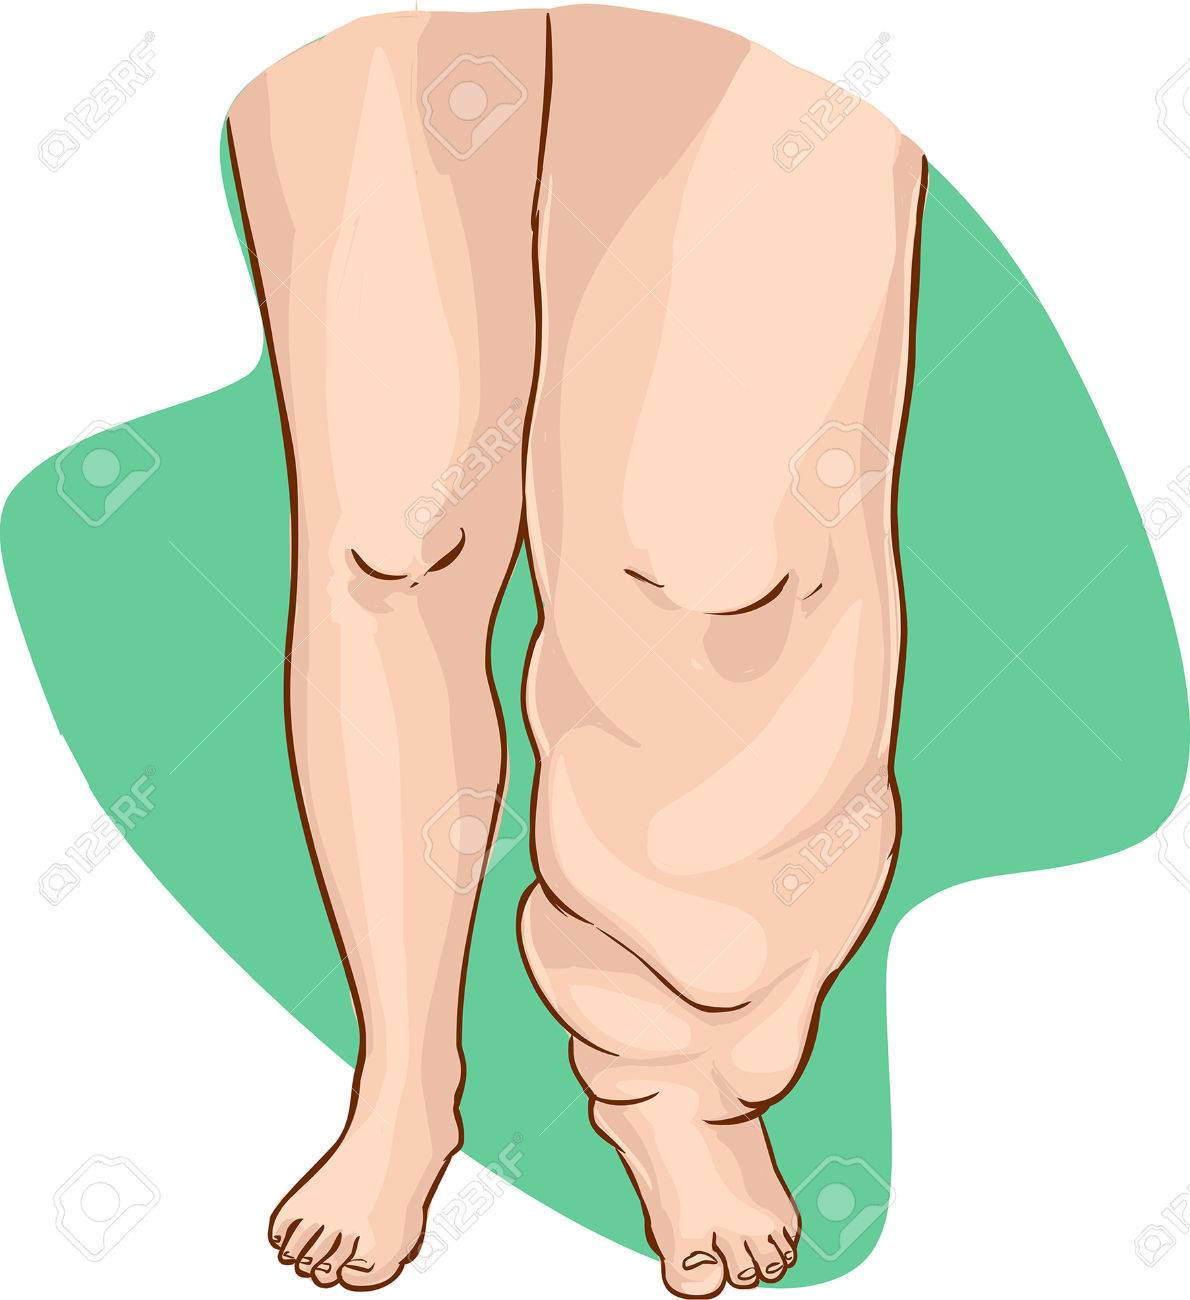 vector illustration of a Lymphedema of the disease - 52749208